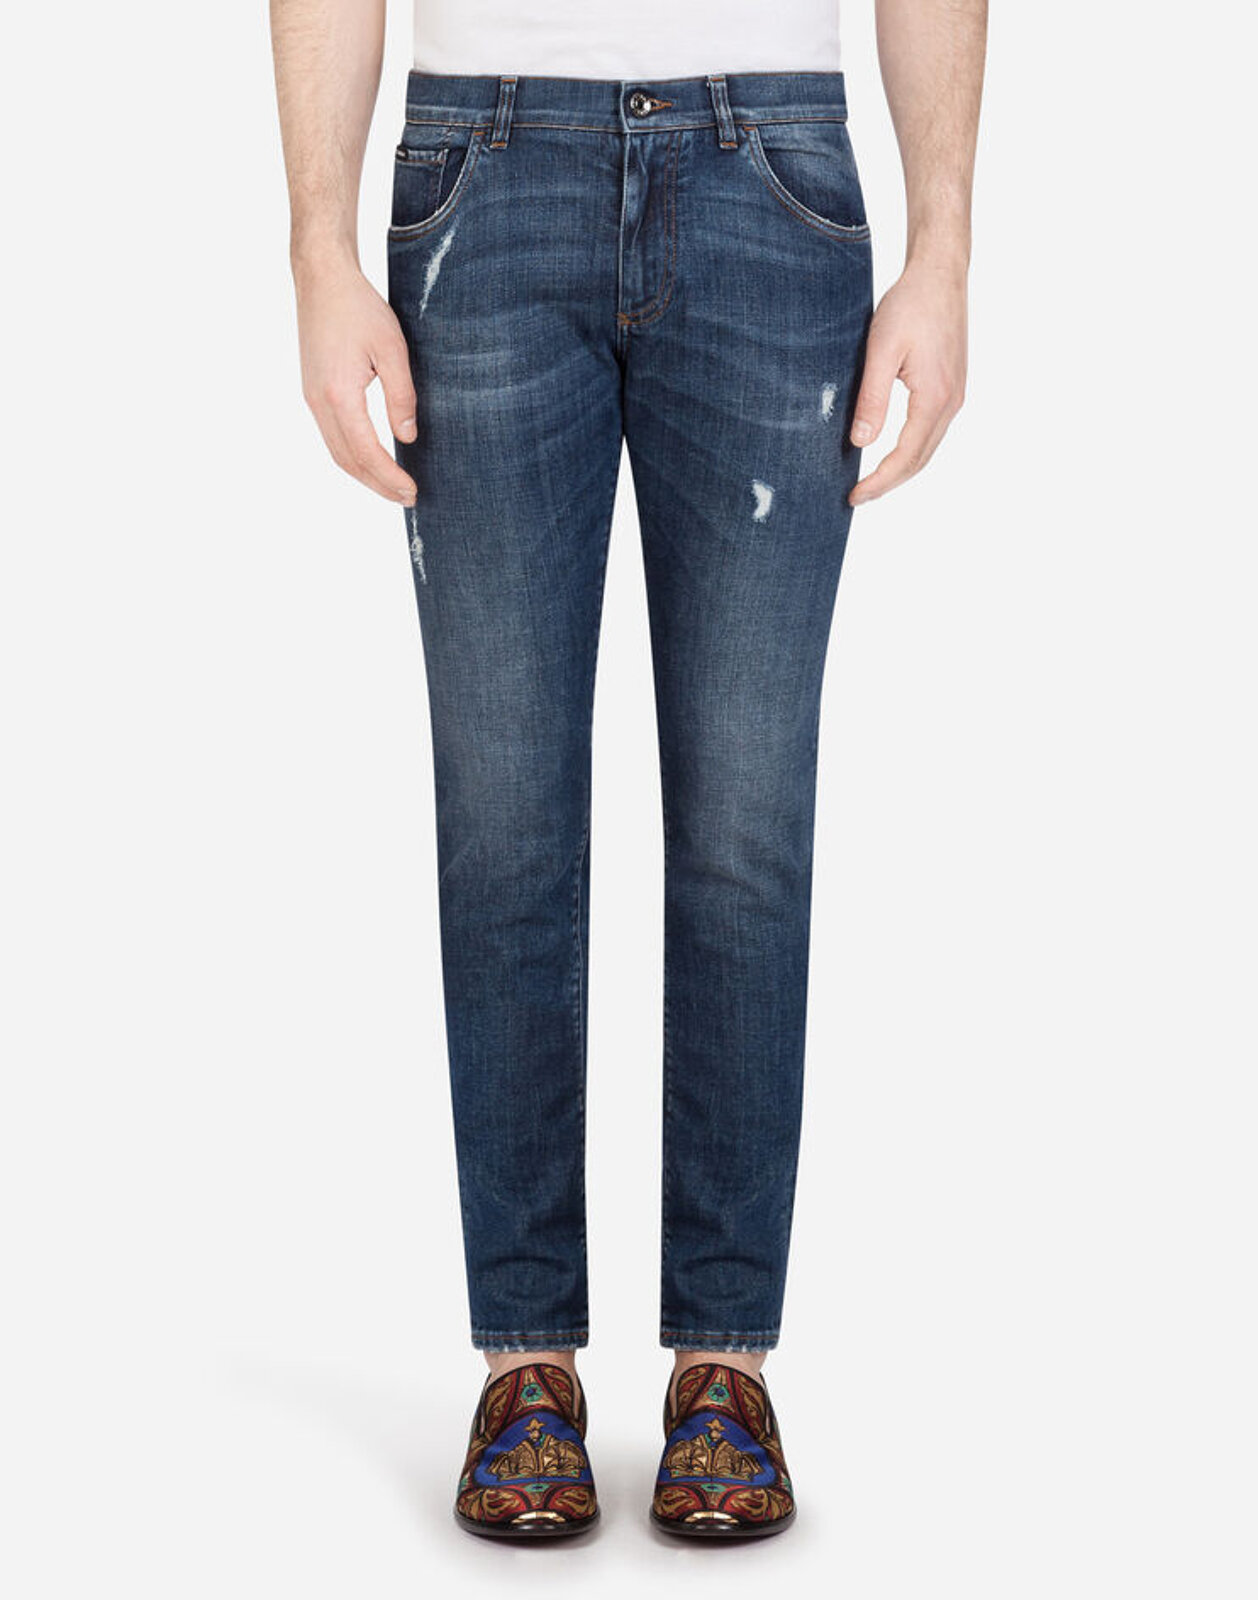 Skinny Stretch Jeans With Small Abrasions - Dolce & Gabbana